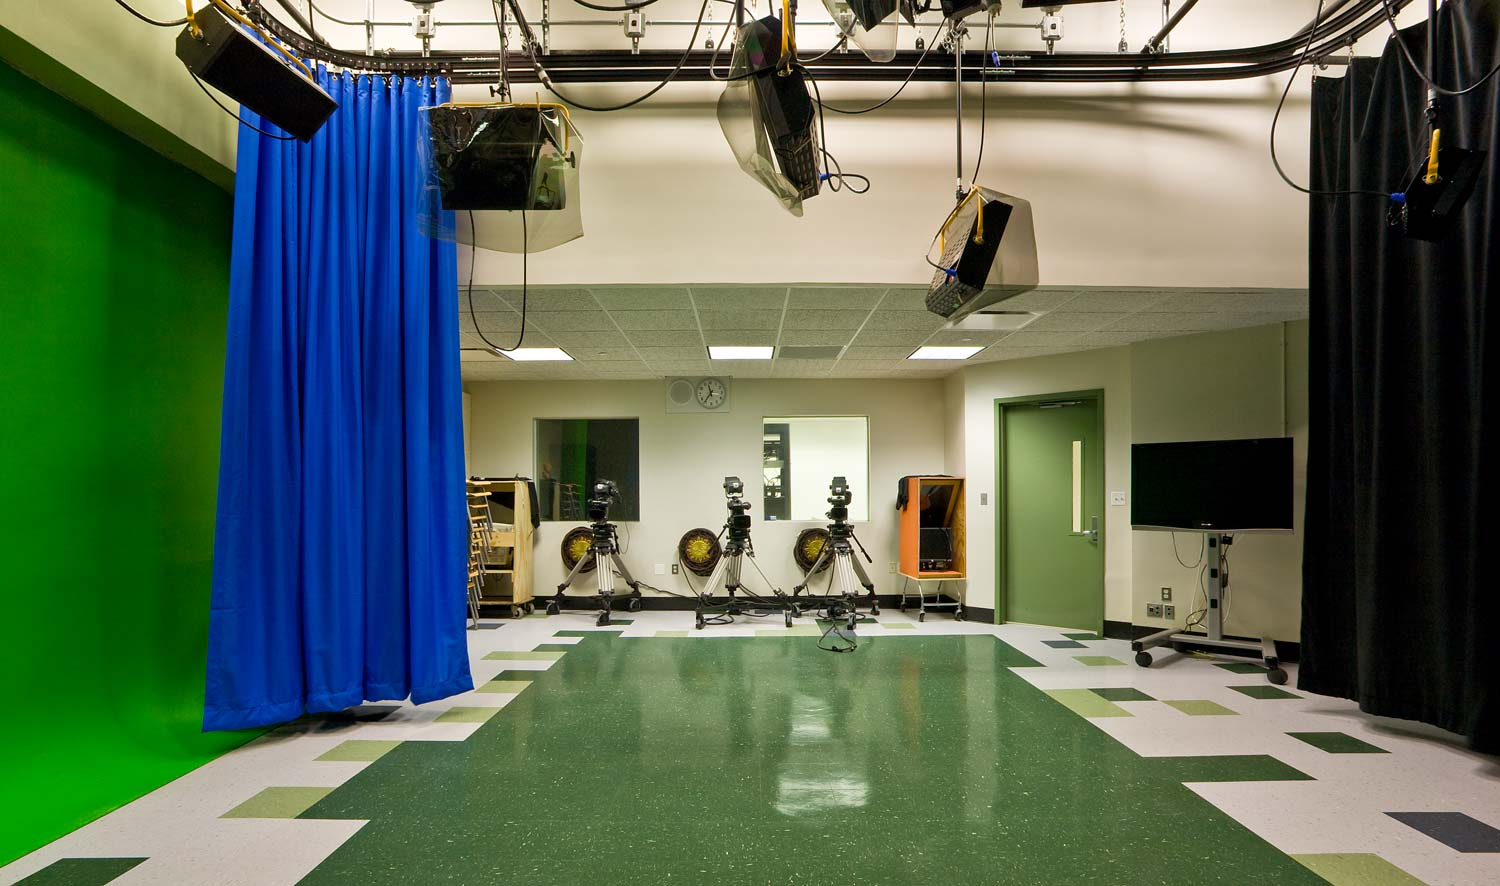 The school is equipped with a high tech audio-visual laboratory.